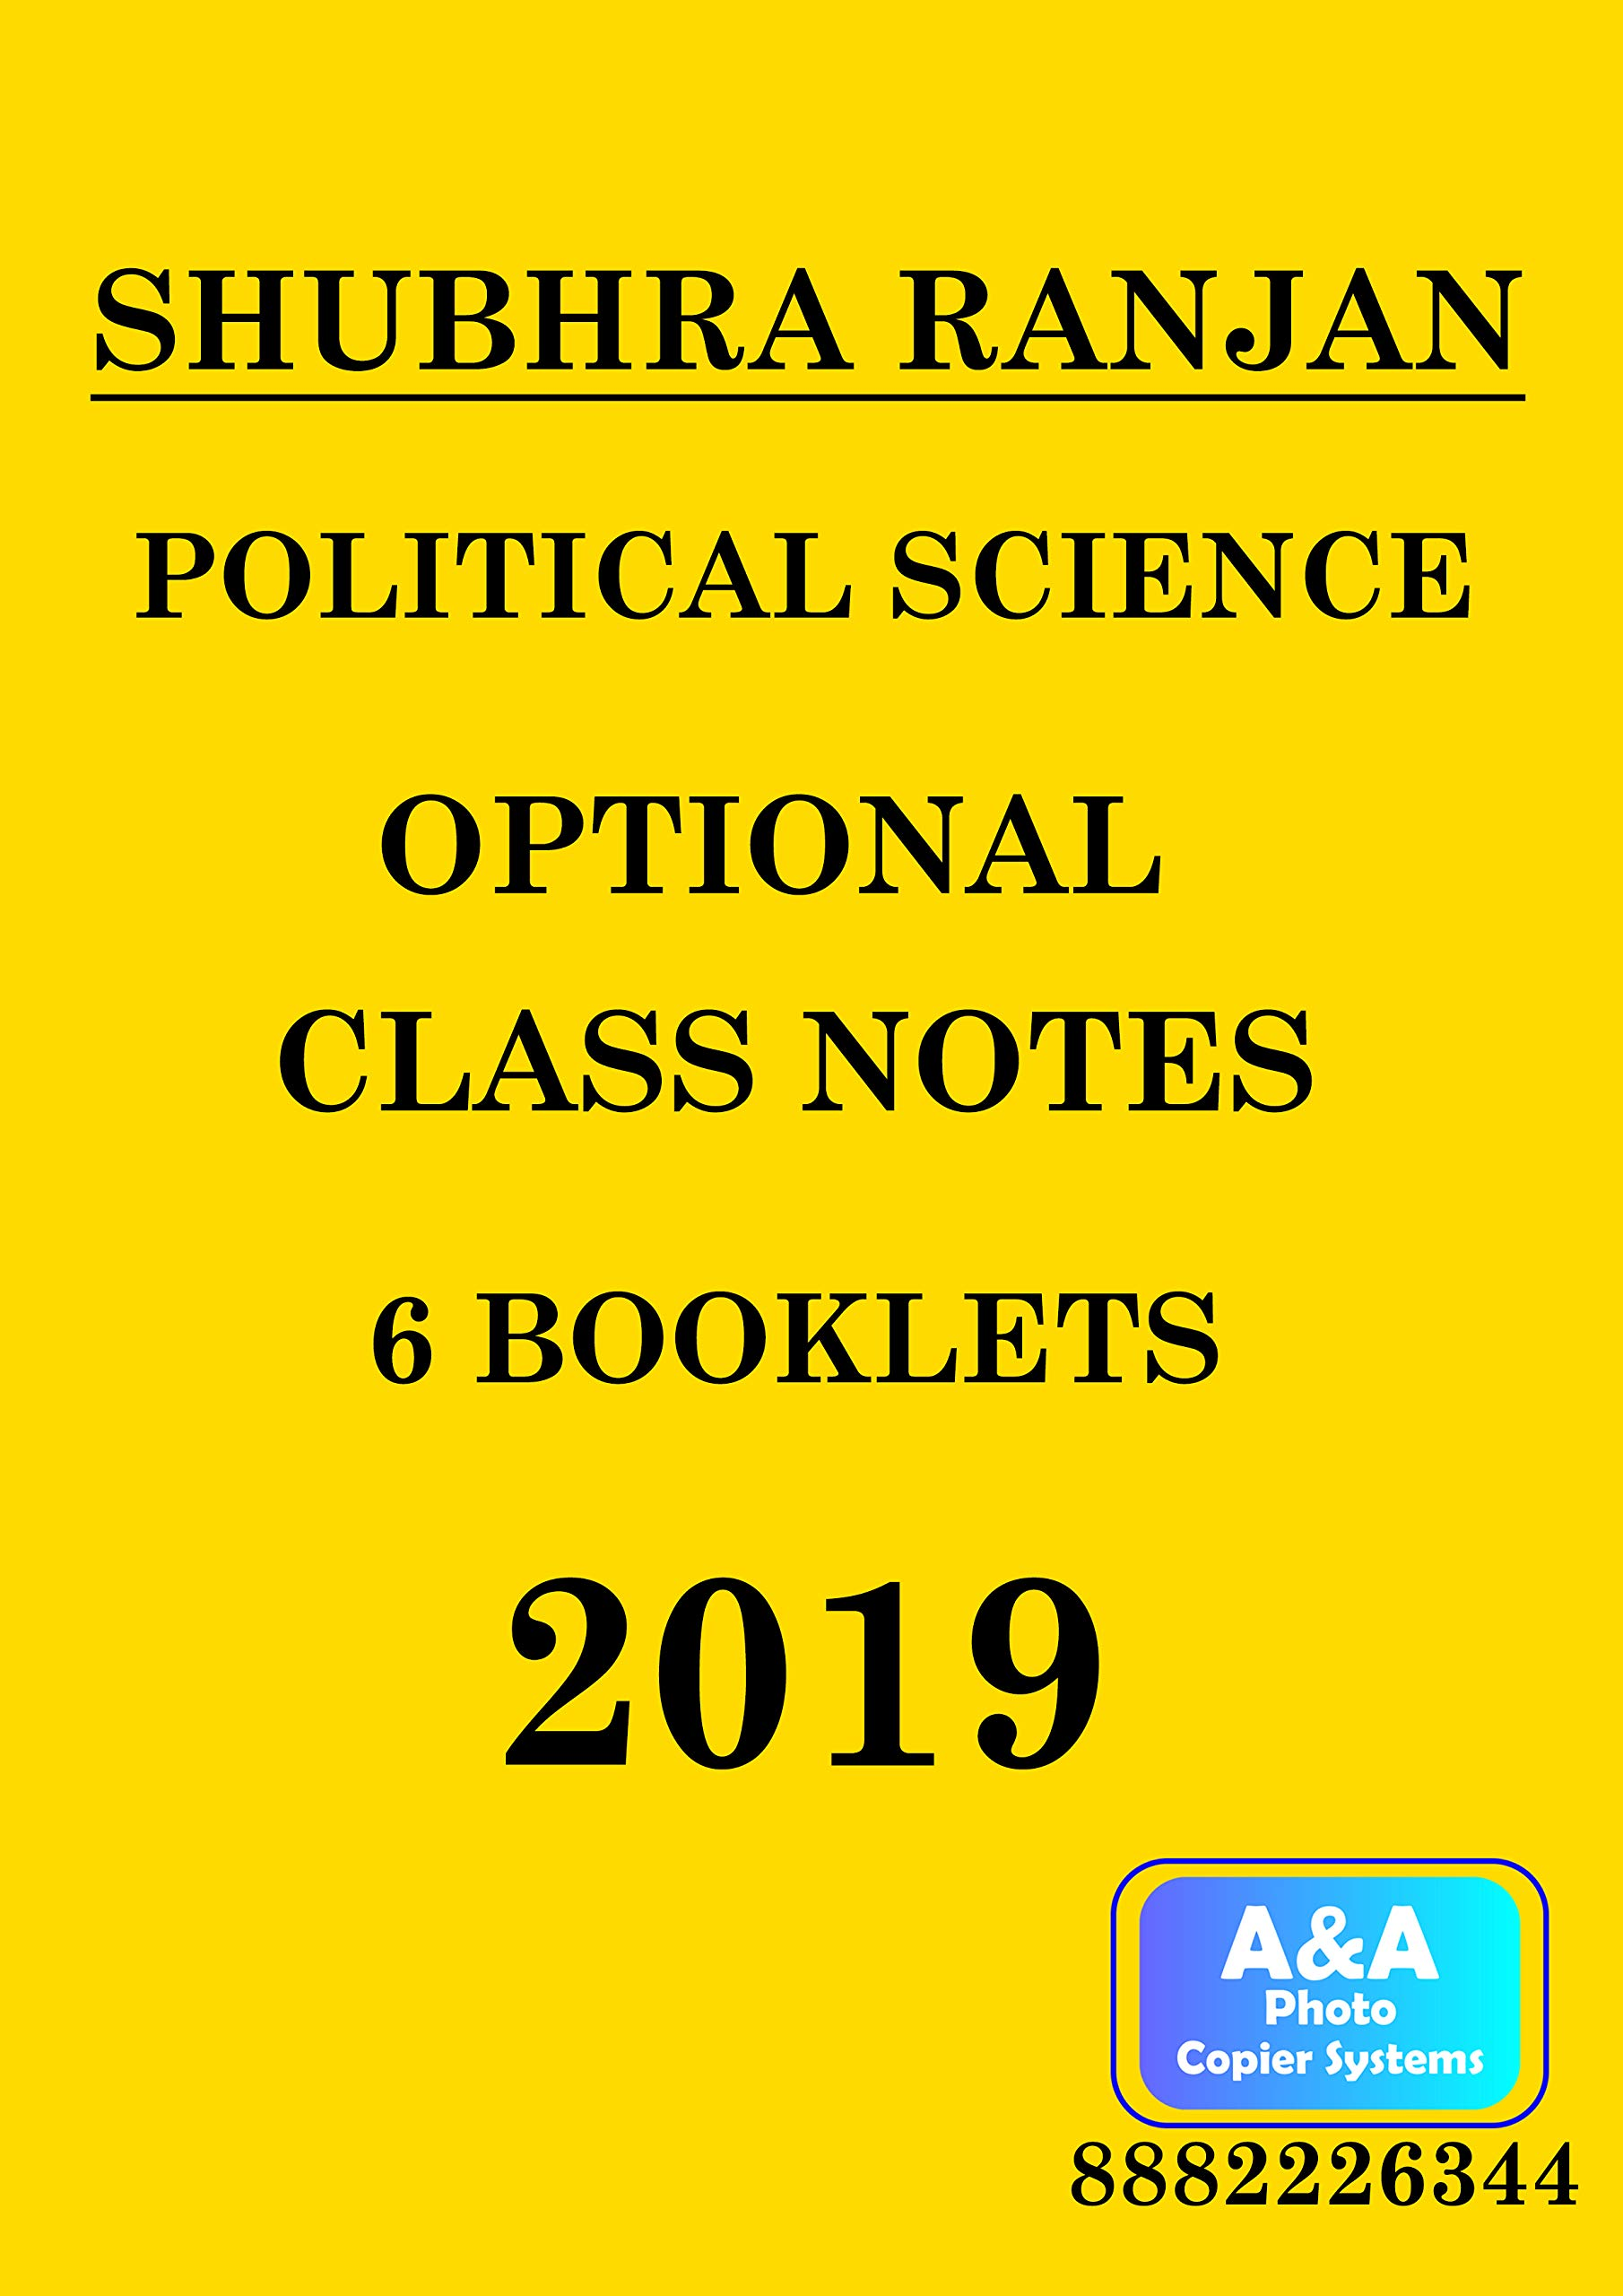 Amazon in: Buy Political Science Optional Class Notes By